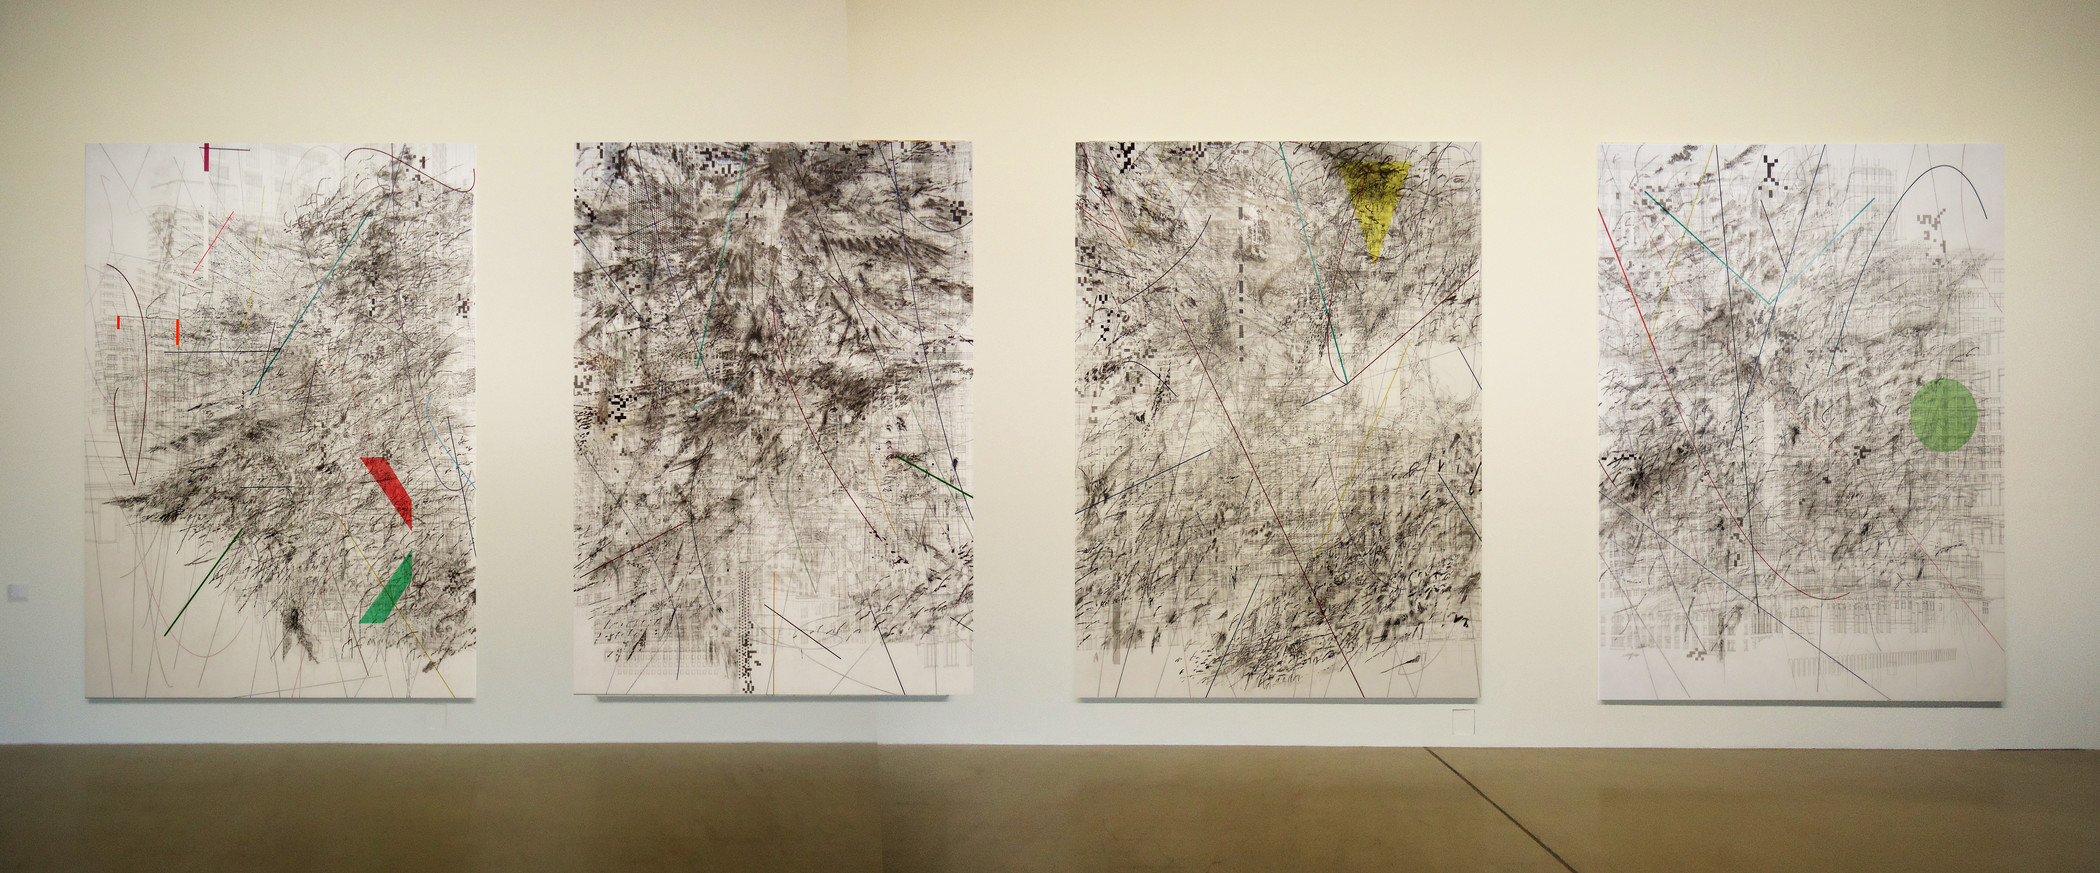 Julie Mehretu, Mogamma (A Painting in Four Parts), 2012, installation view in Documenta 13, Kassel, Germany, 2012, © Julie Mehretu, photograph by Ryszard Kasiewicz, courtesy of the artist, Marian Goodman Gallery, New York, and White Cube